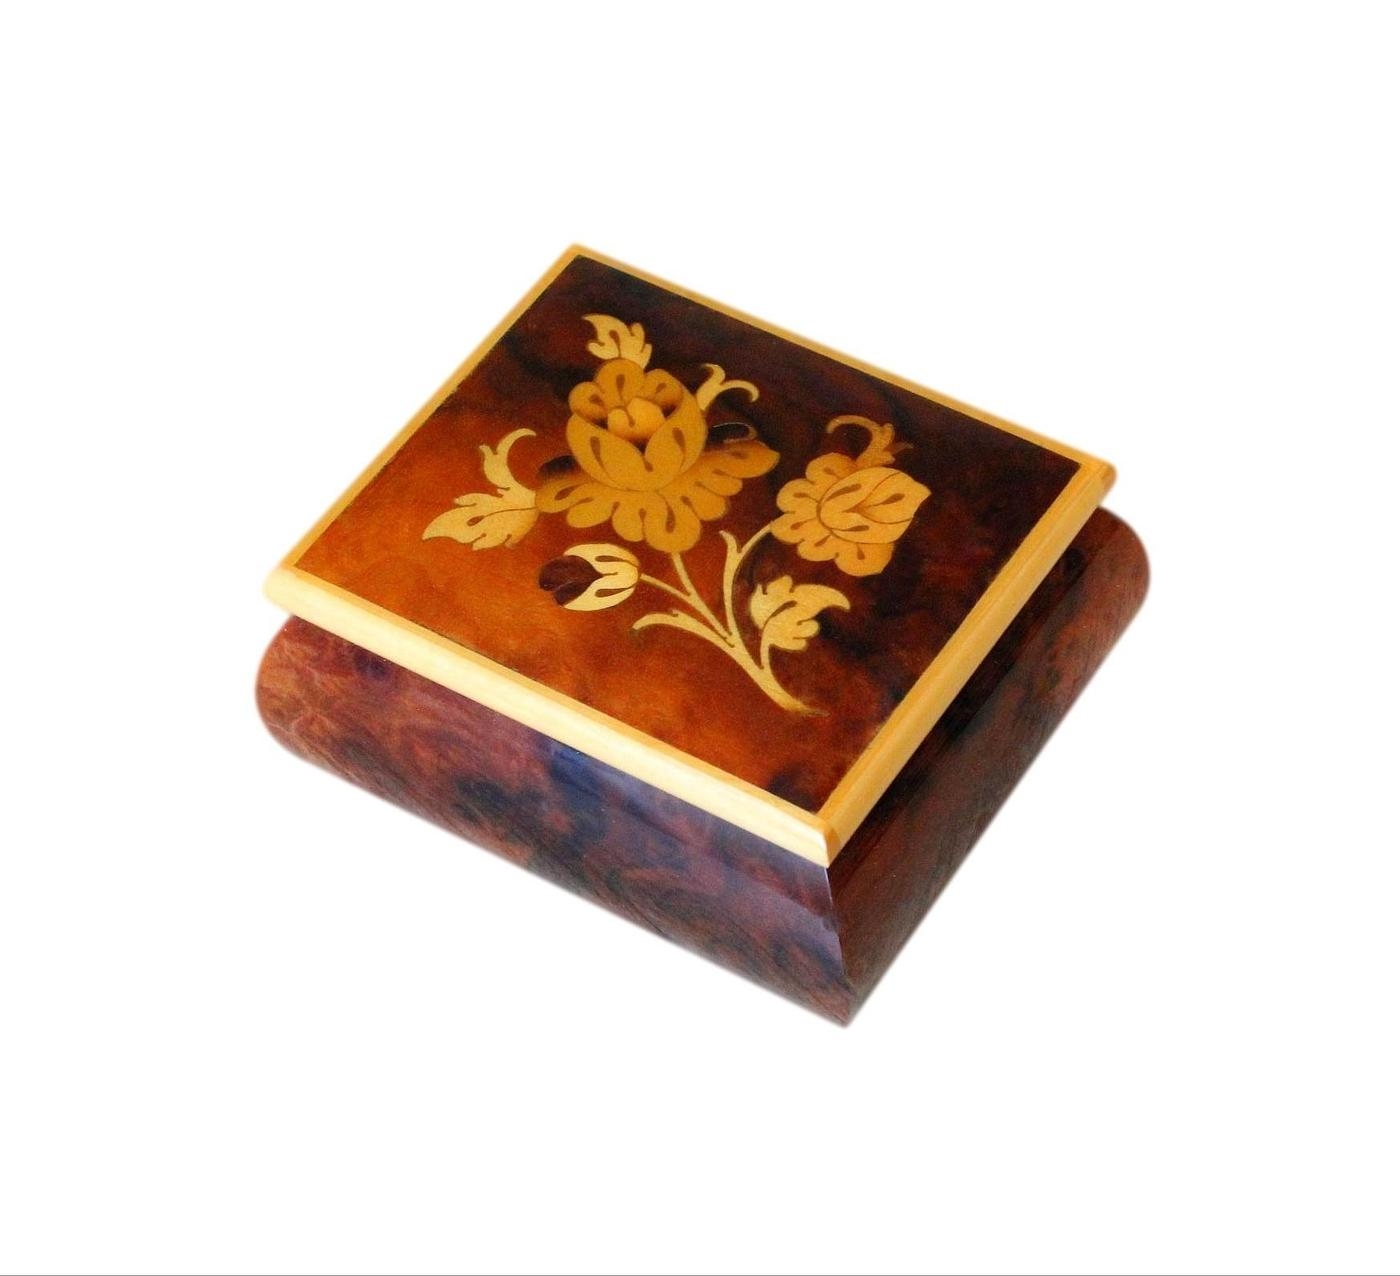 Beautifully Inlaid Small Vintage Jewellery Box From Sorrento